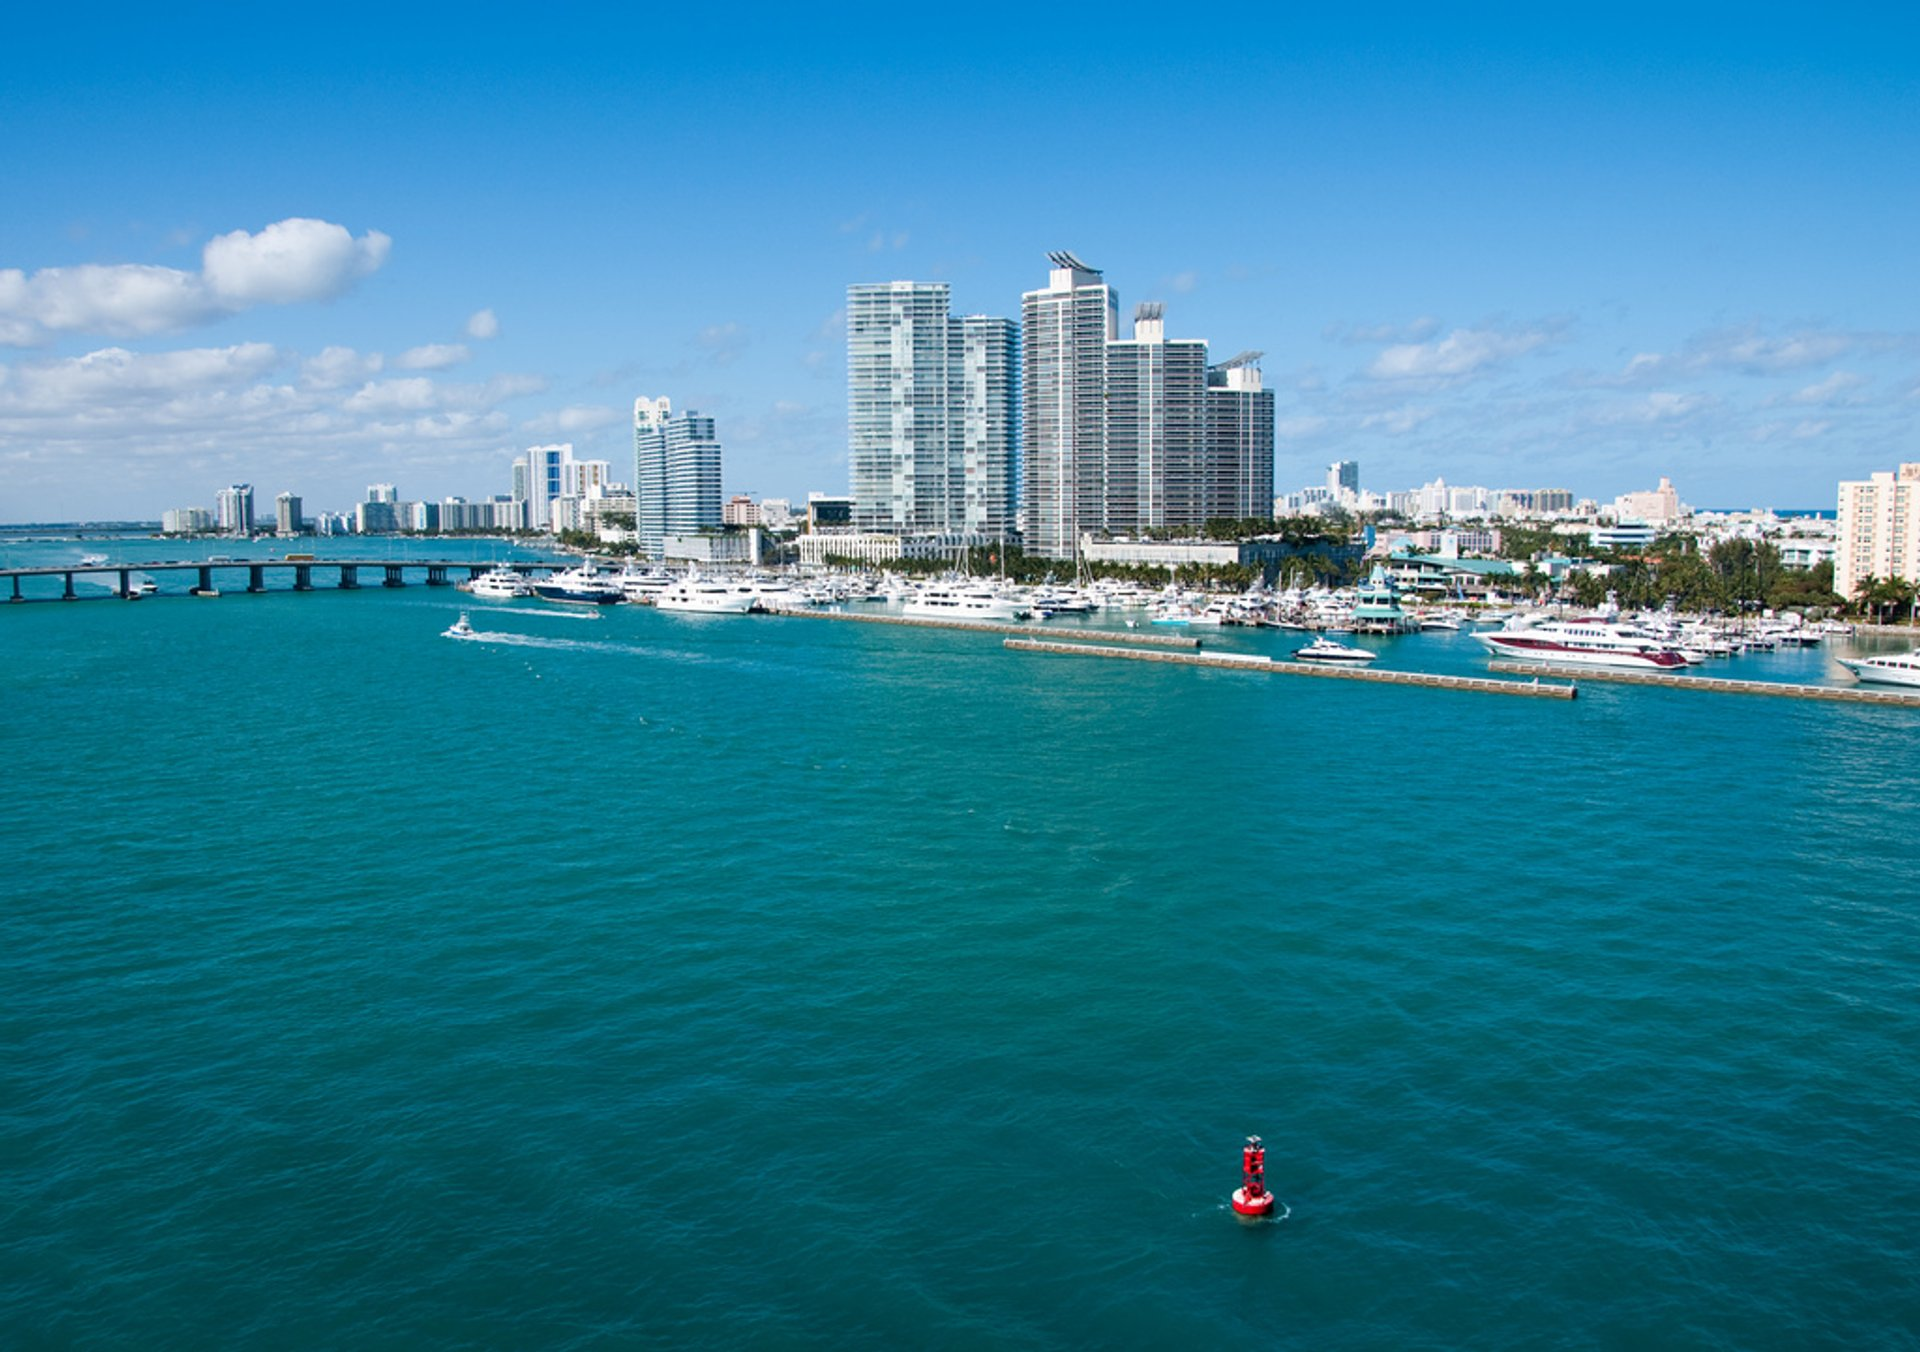 Miami Cruise Month in Miami 2020 - Best Time